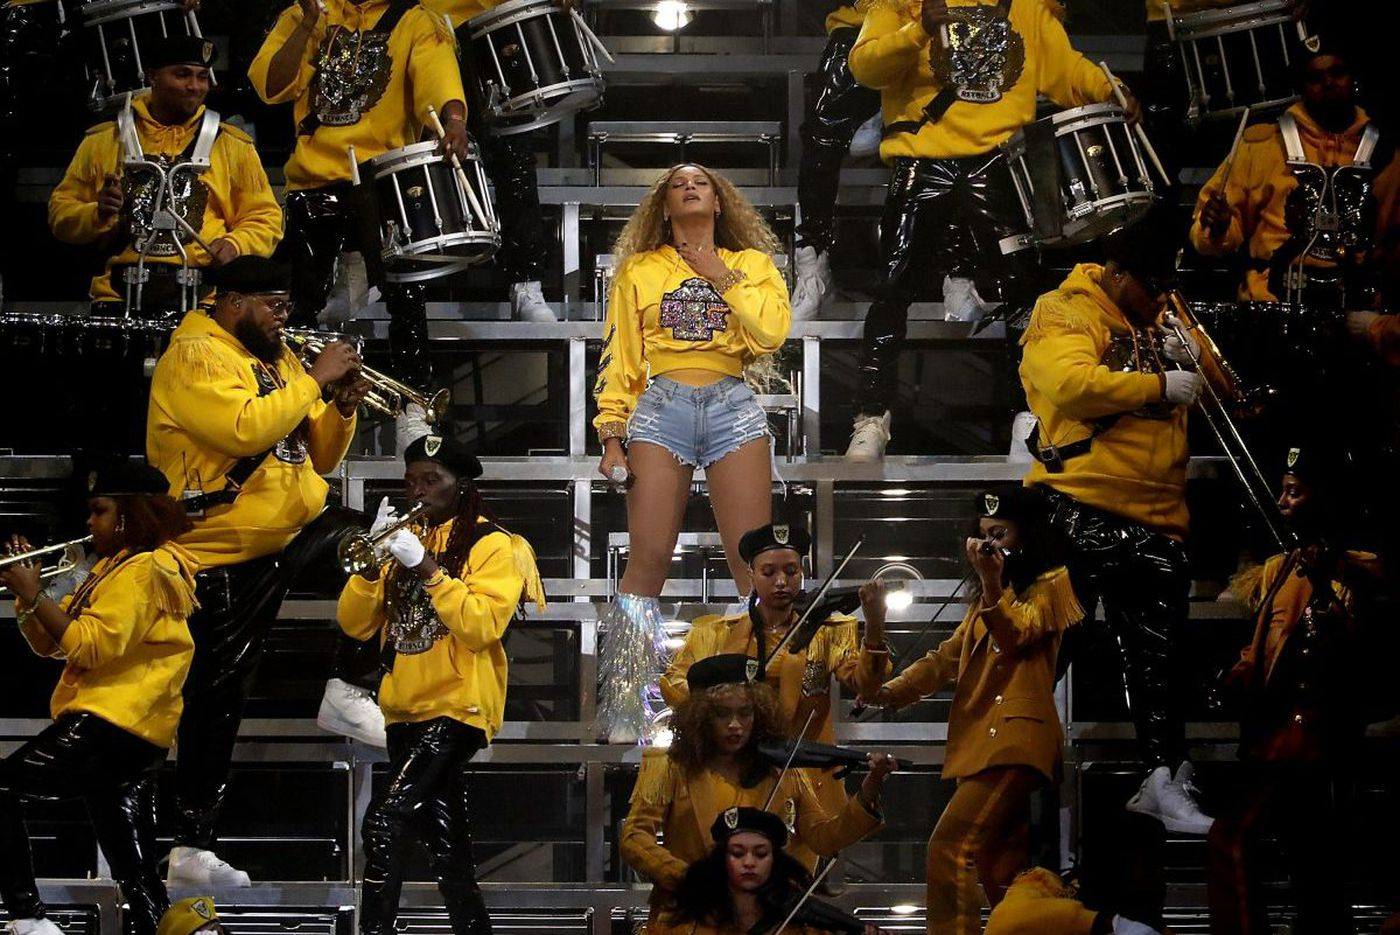 After paying homage to black culture at 'Beychella', Beyoncé donates $100k to HBCUs